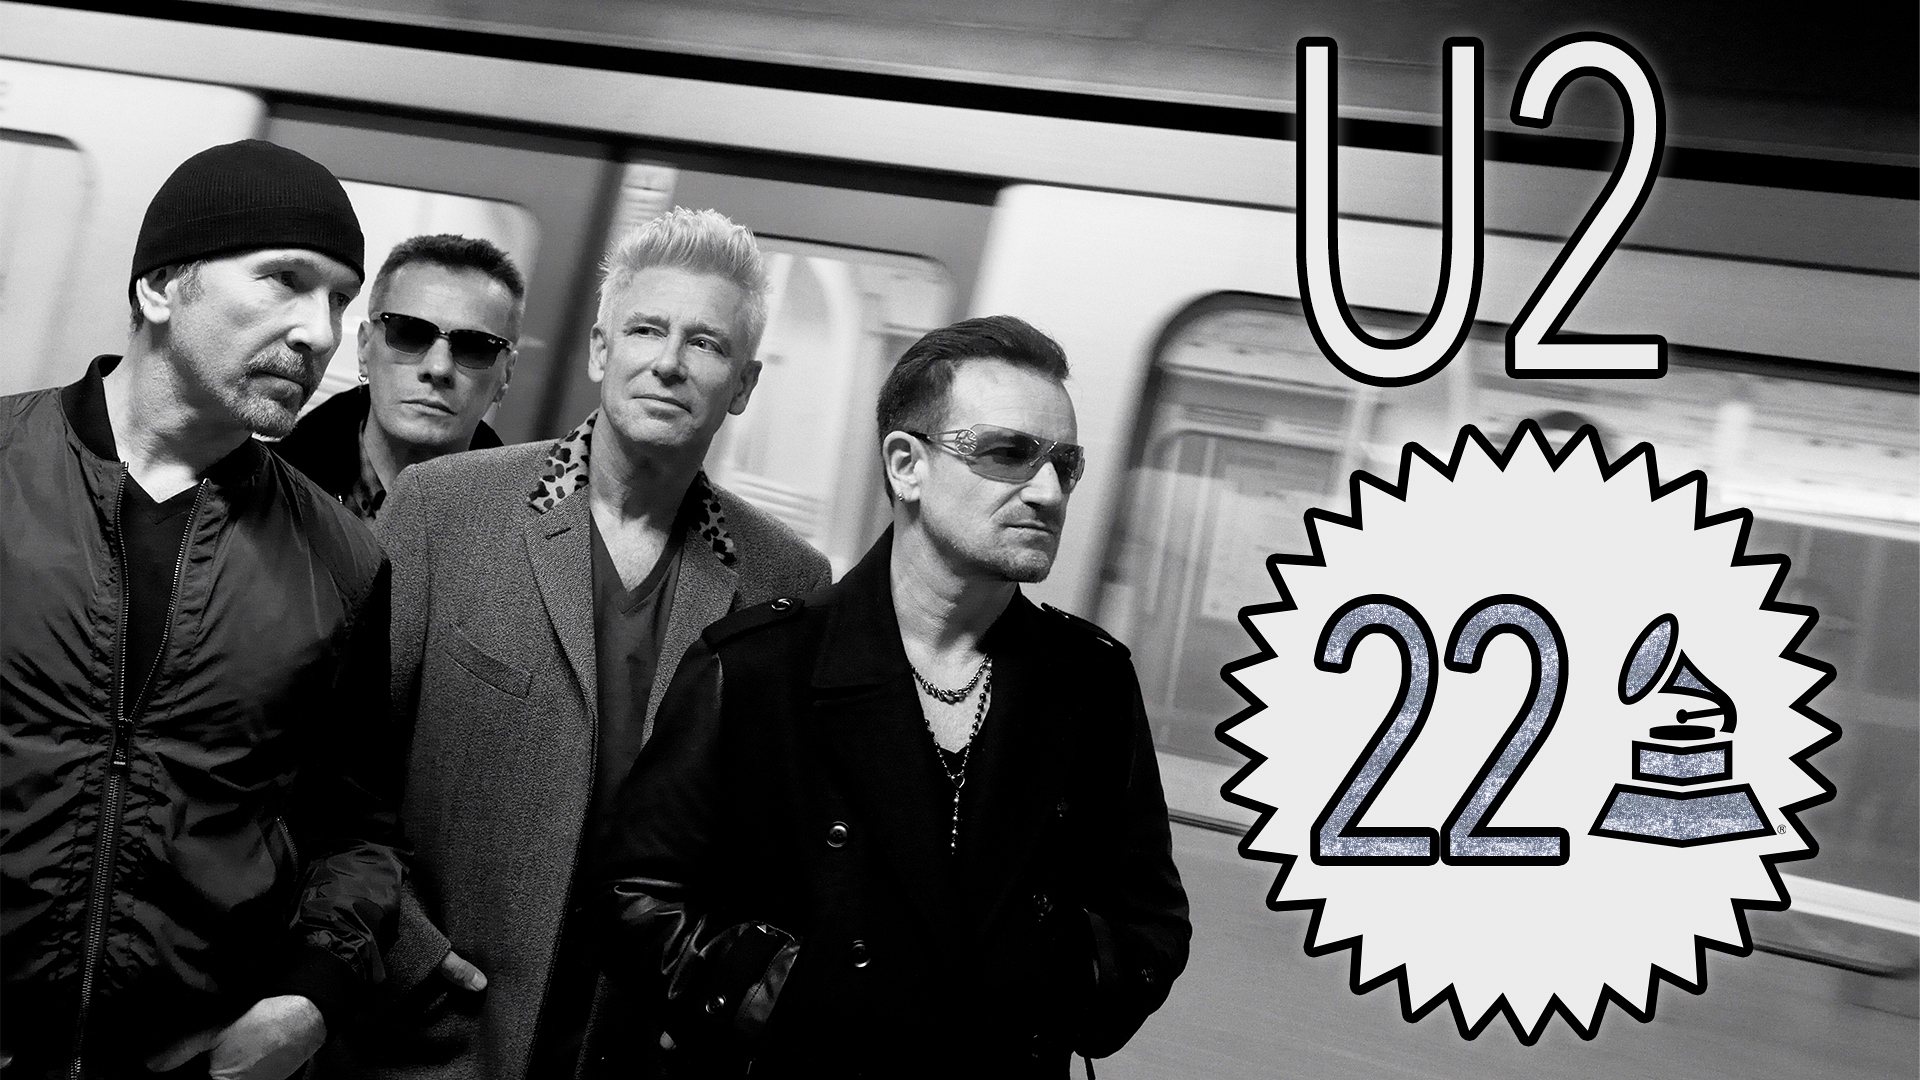 U2 with 22 GRAMMY Awards